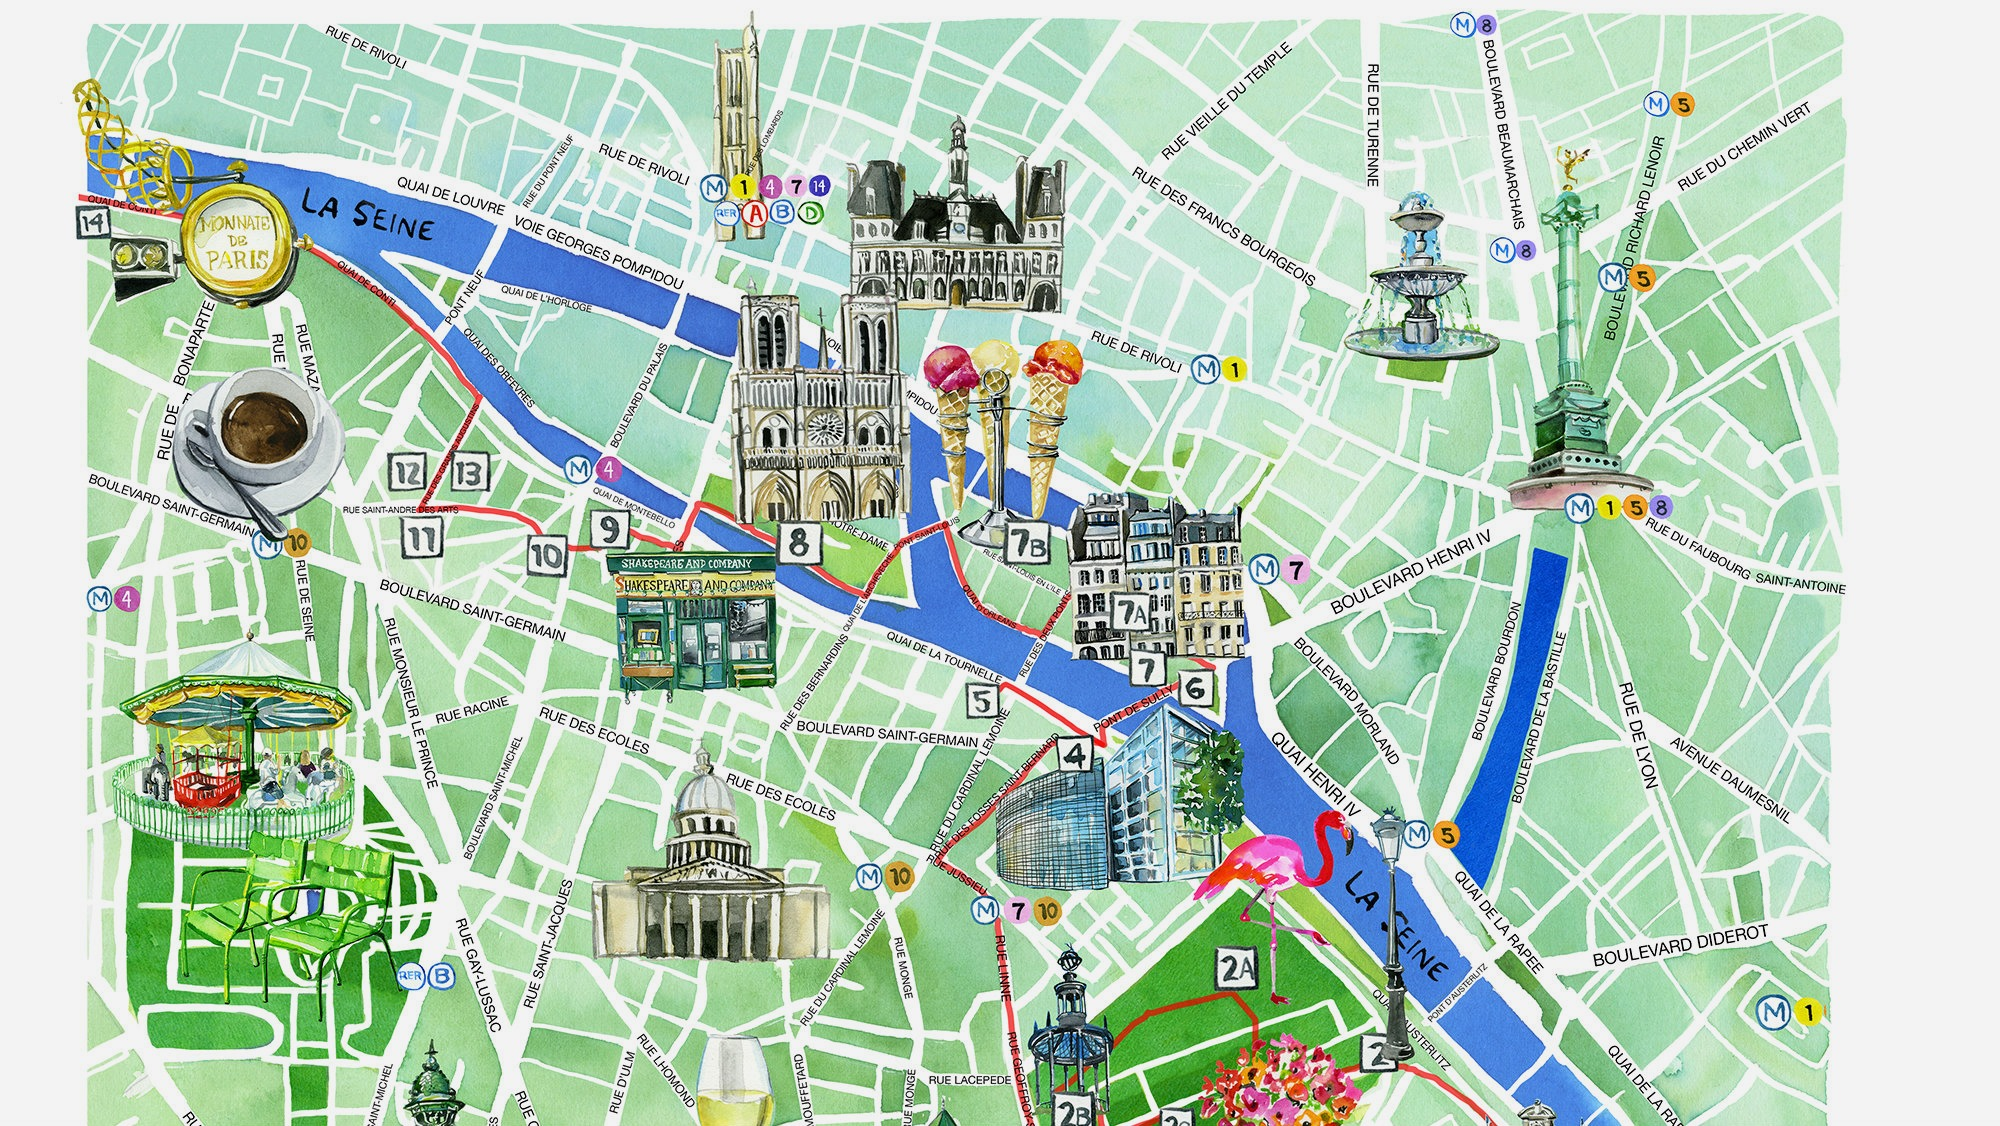 Traveling to Paris: How to plan a trip like a local — Quartzy on printable map of paris, simplified map of paris, english map of paris, sports map of paris, interactive map of paris, white map of paris, outlined map of paris, high resolution map of paris, history map of paris, fun map of paris, highlighted map of paris, large map of paris, antique map of paris, watercolor of paris, color map of paris, travel map of paris, detailed street map of paris, photography of paris, religion map of paris, illustration of paris,